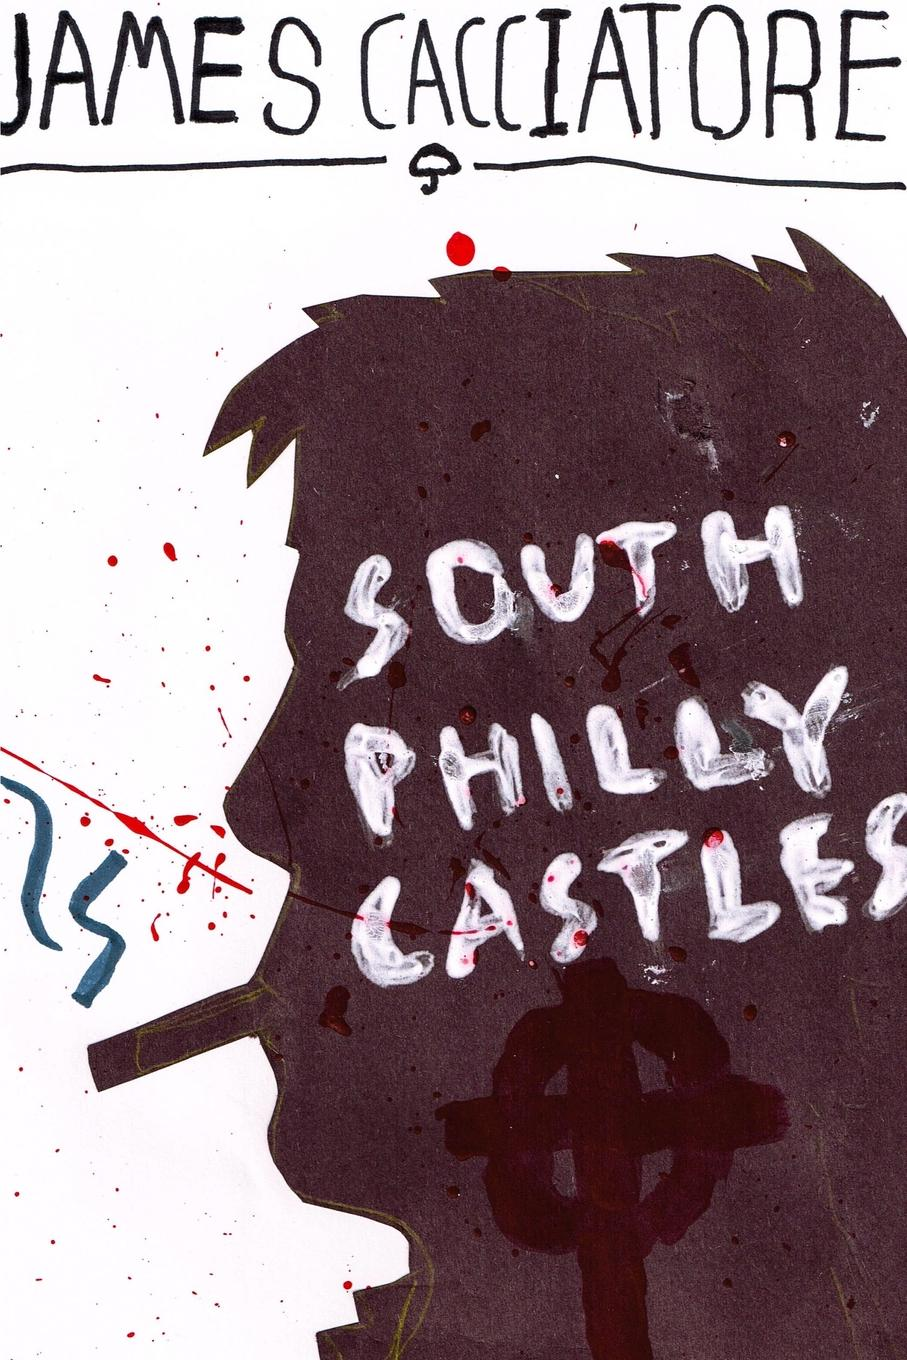 James Cacciatore South Philly Castles set wonders in the new year s plaid